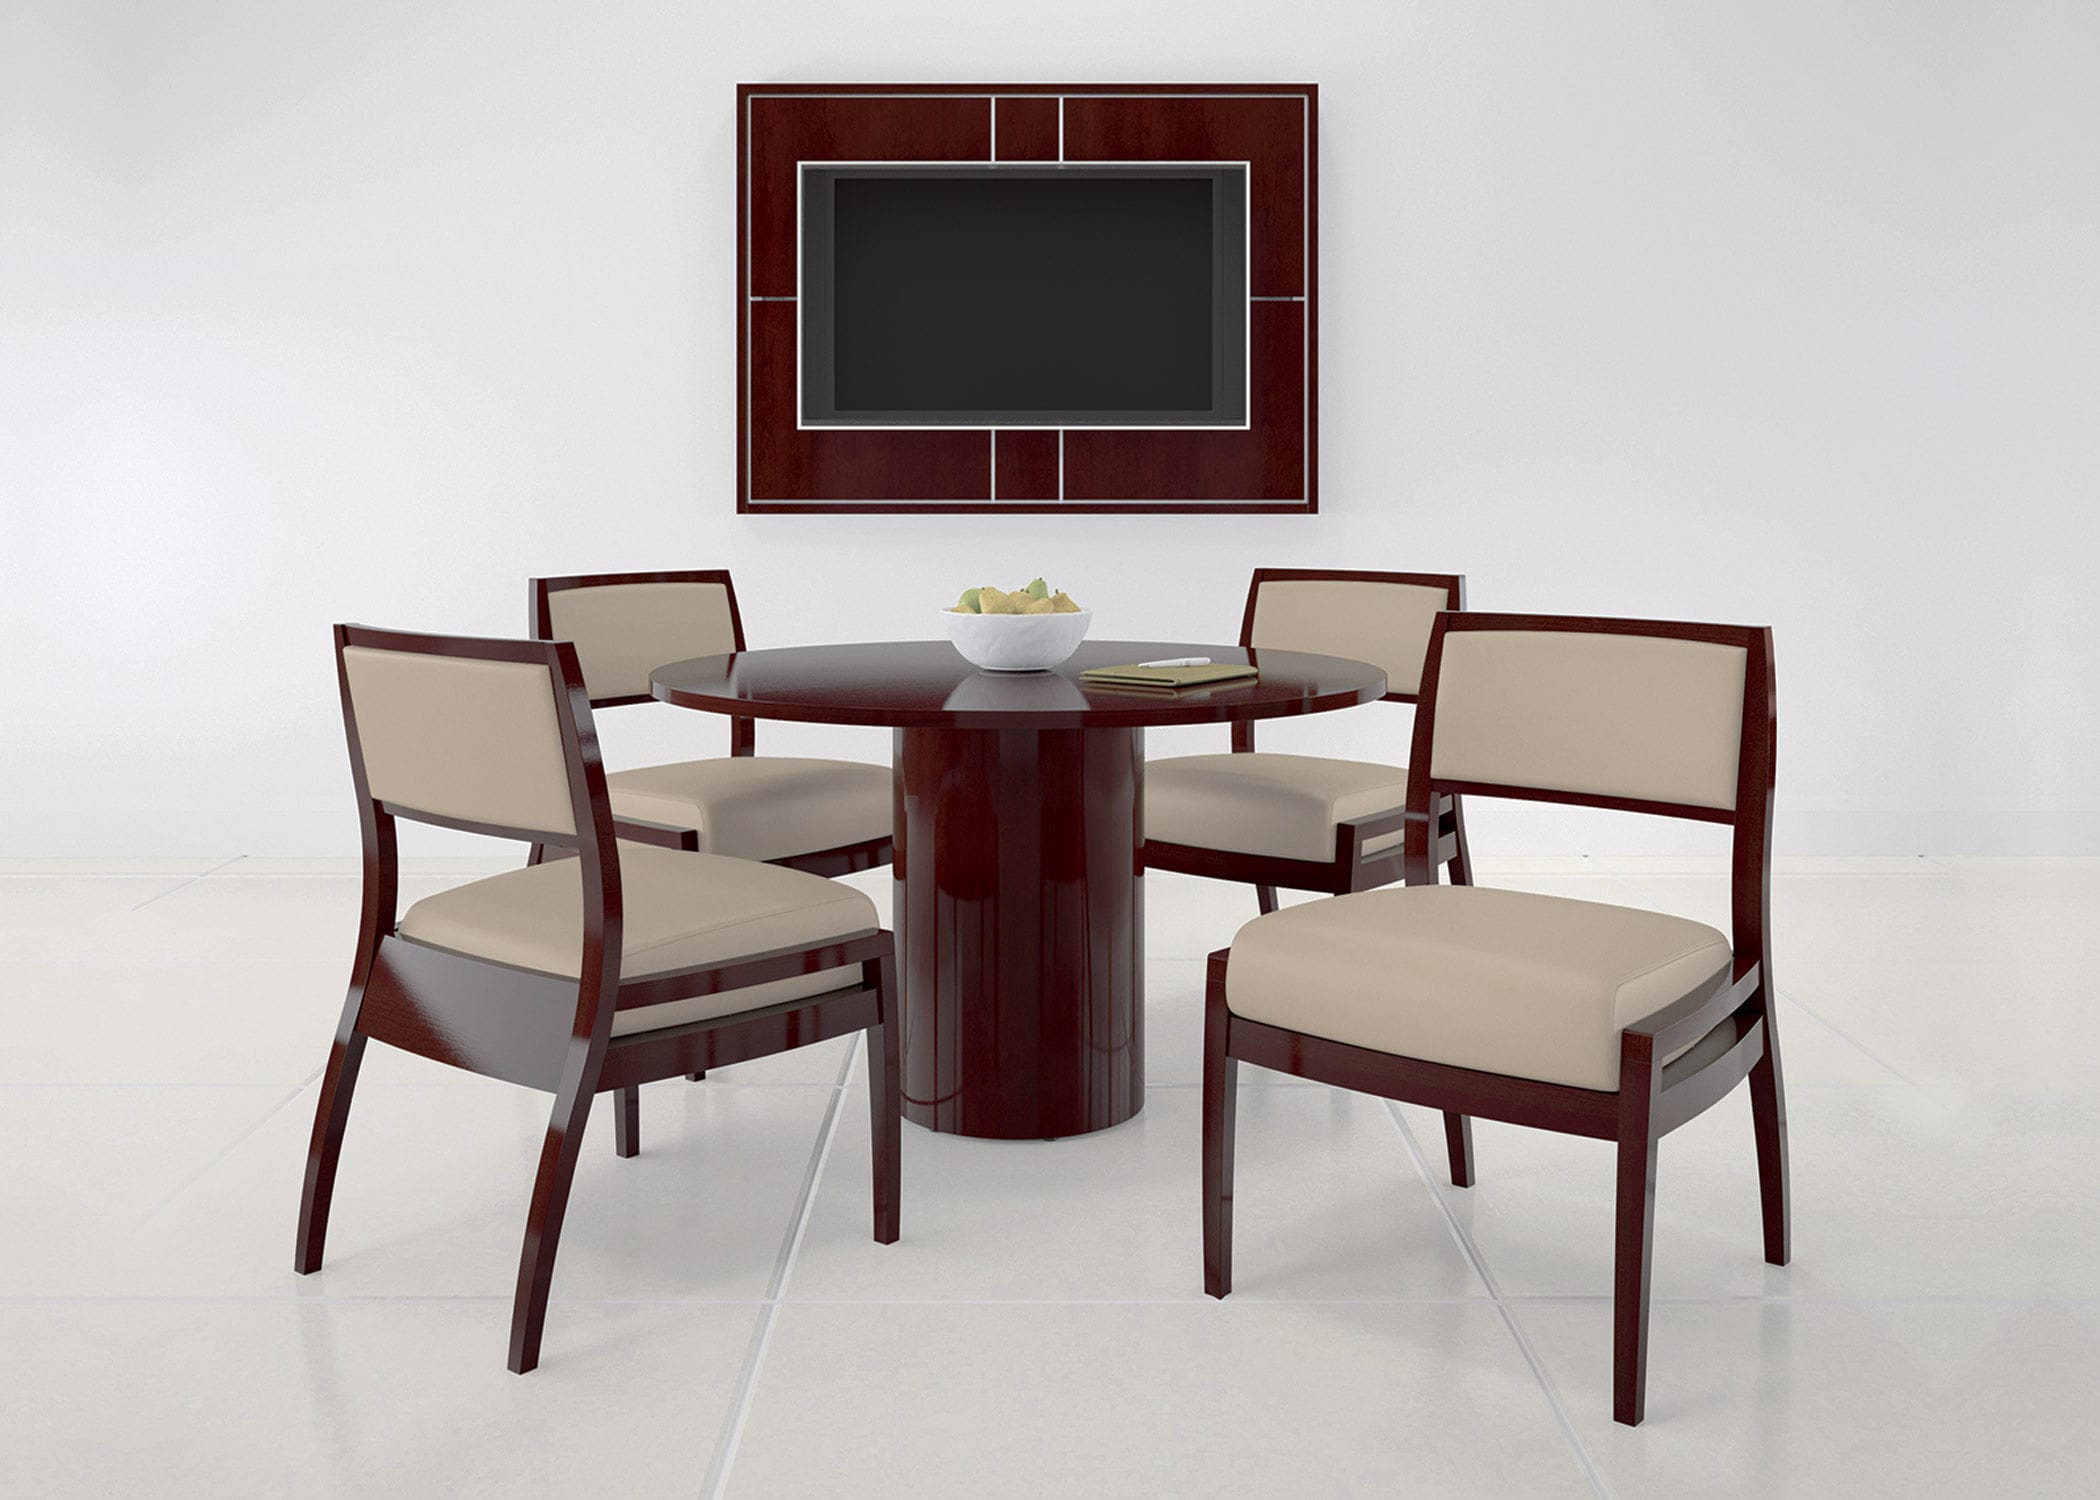 office dining table. Dining Table / For Waiting Rooms Rectangular Round - Universal Office